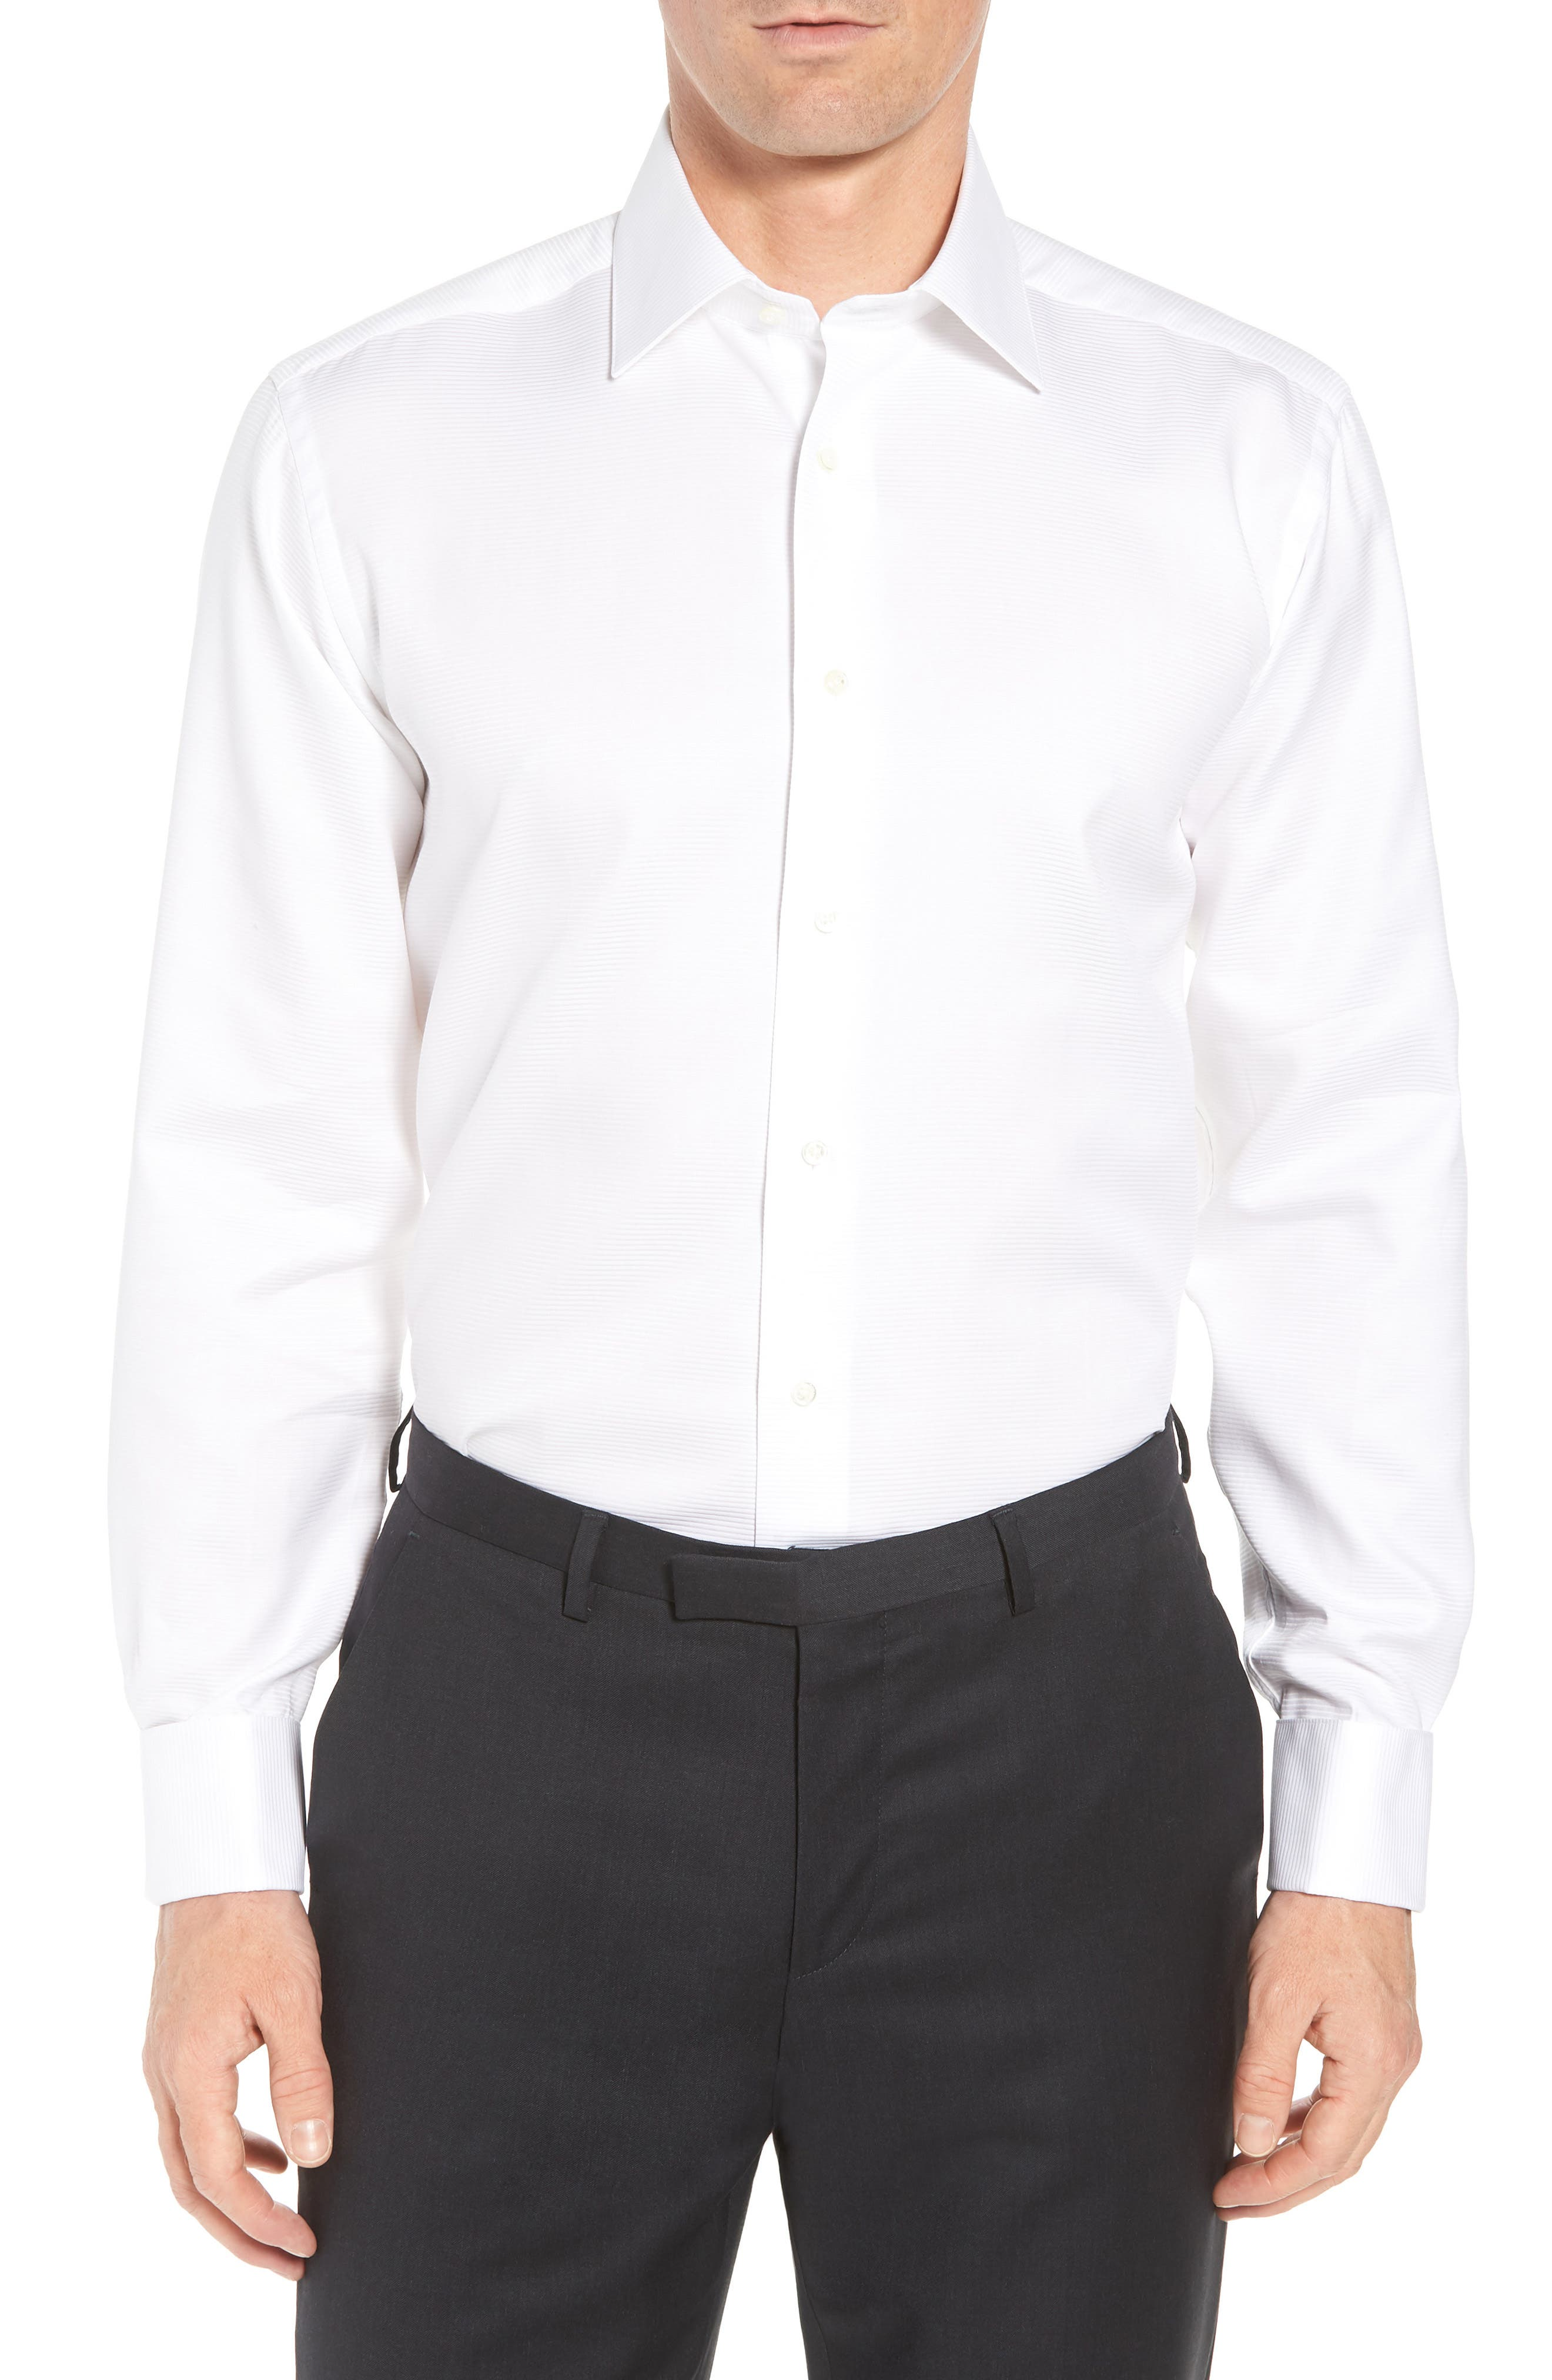 DAVID DONAHUE, Horizontal Twill Regular Fit Tuxedo Shirt, Main thumbnail 1, color, WHITE